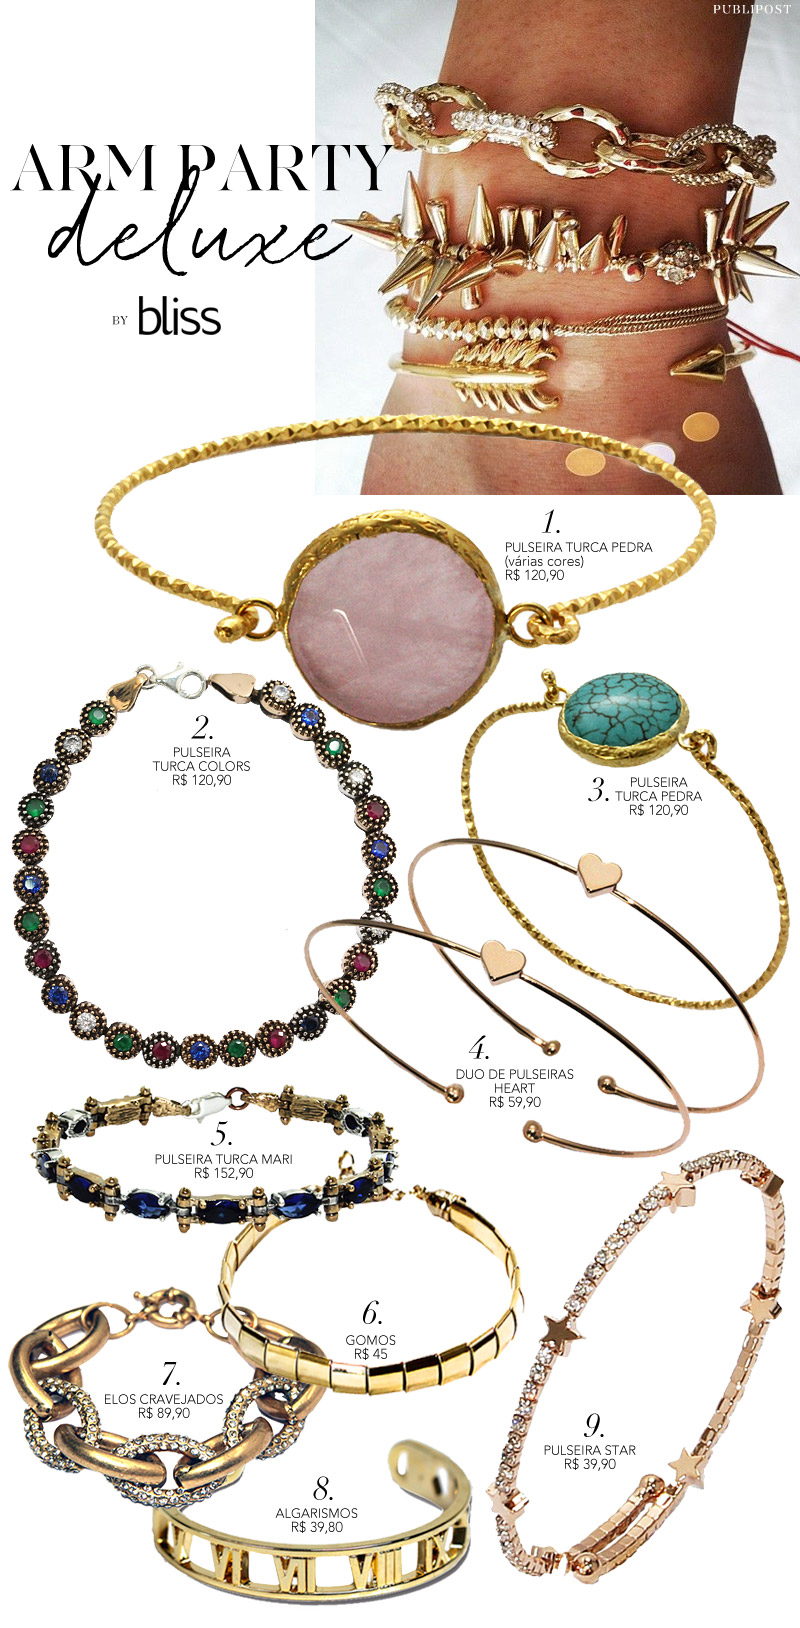 living-gazette-barbara-resende-moda-bijoux-pulseirismo-bliss4you-loja-online